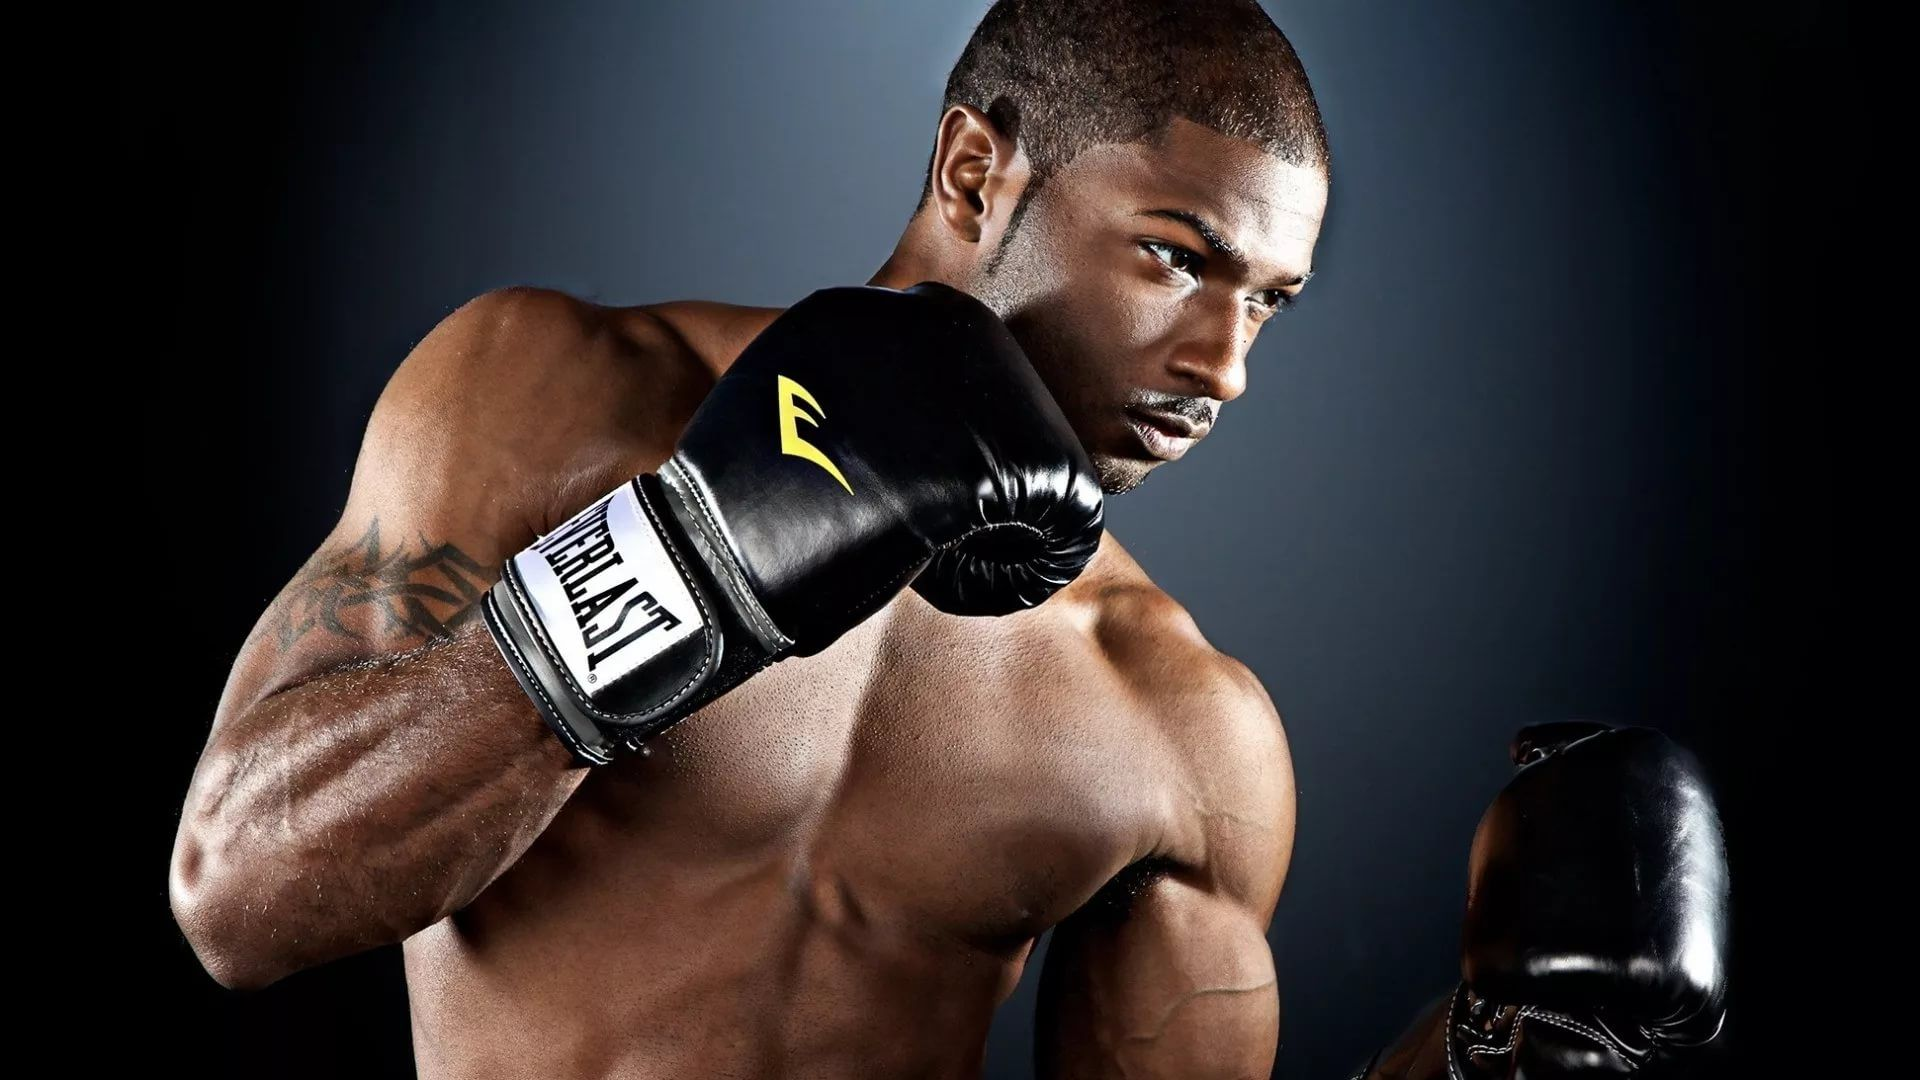 MMA full hd wallpaper for laptop